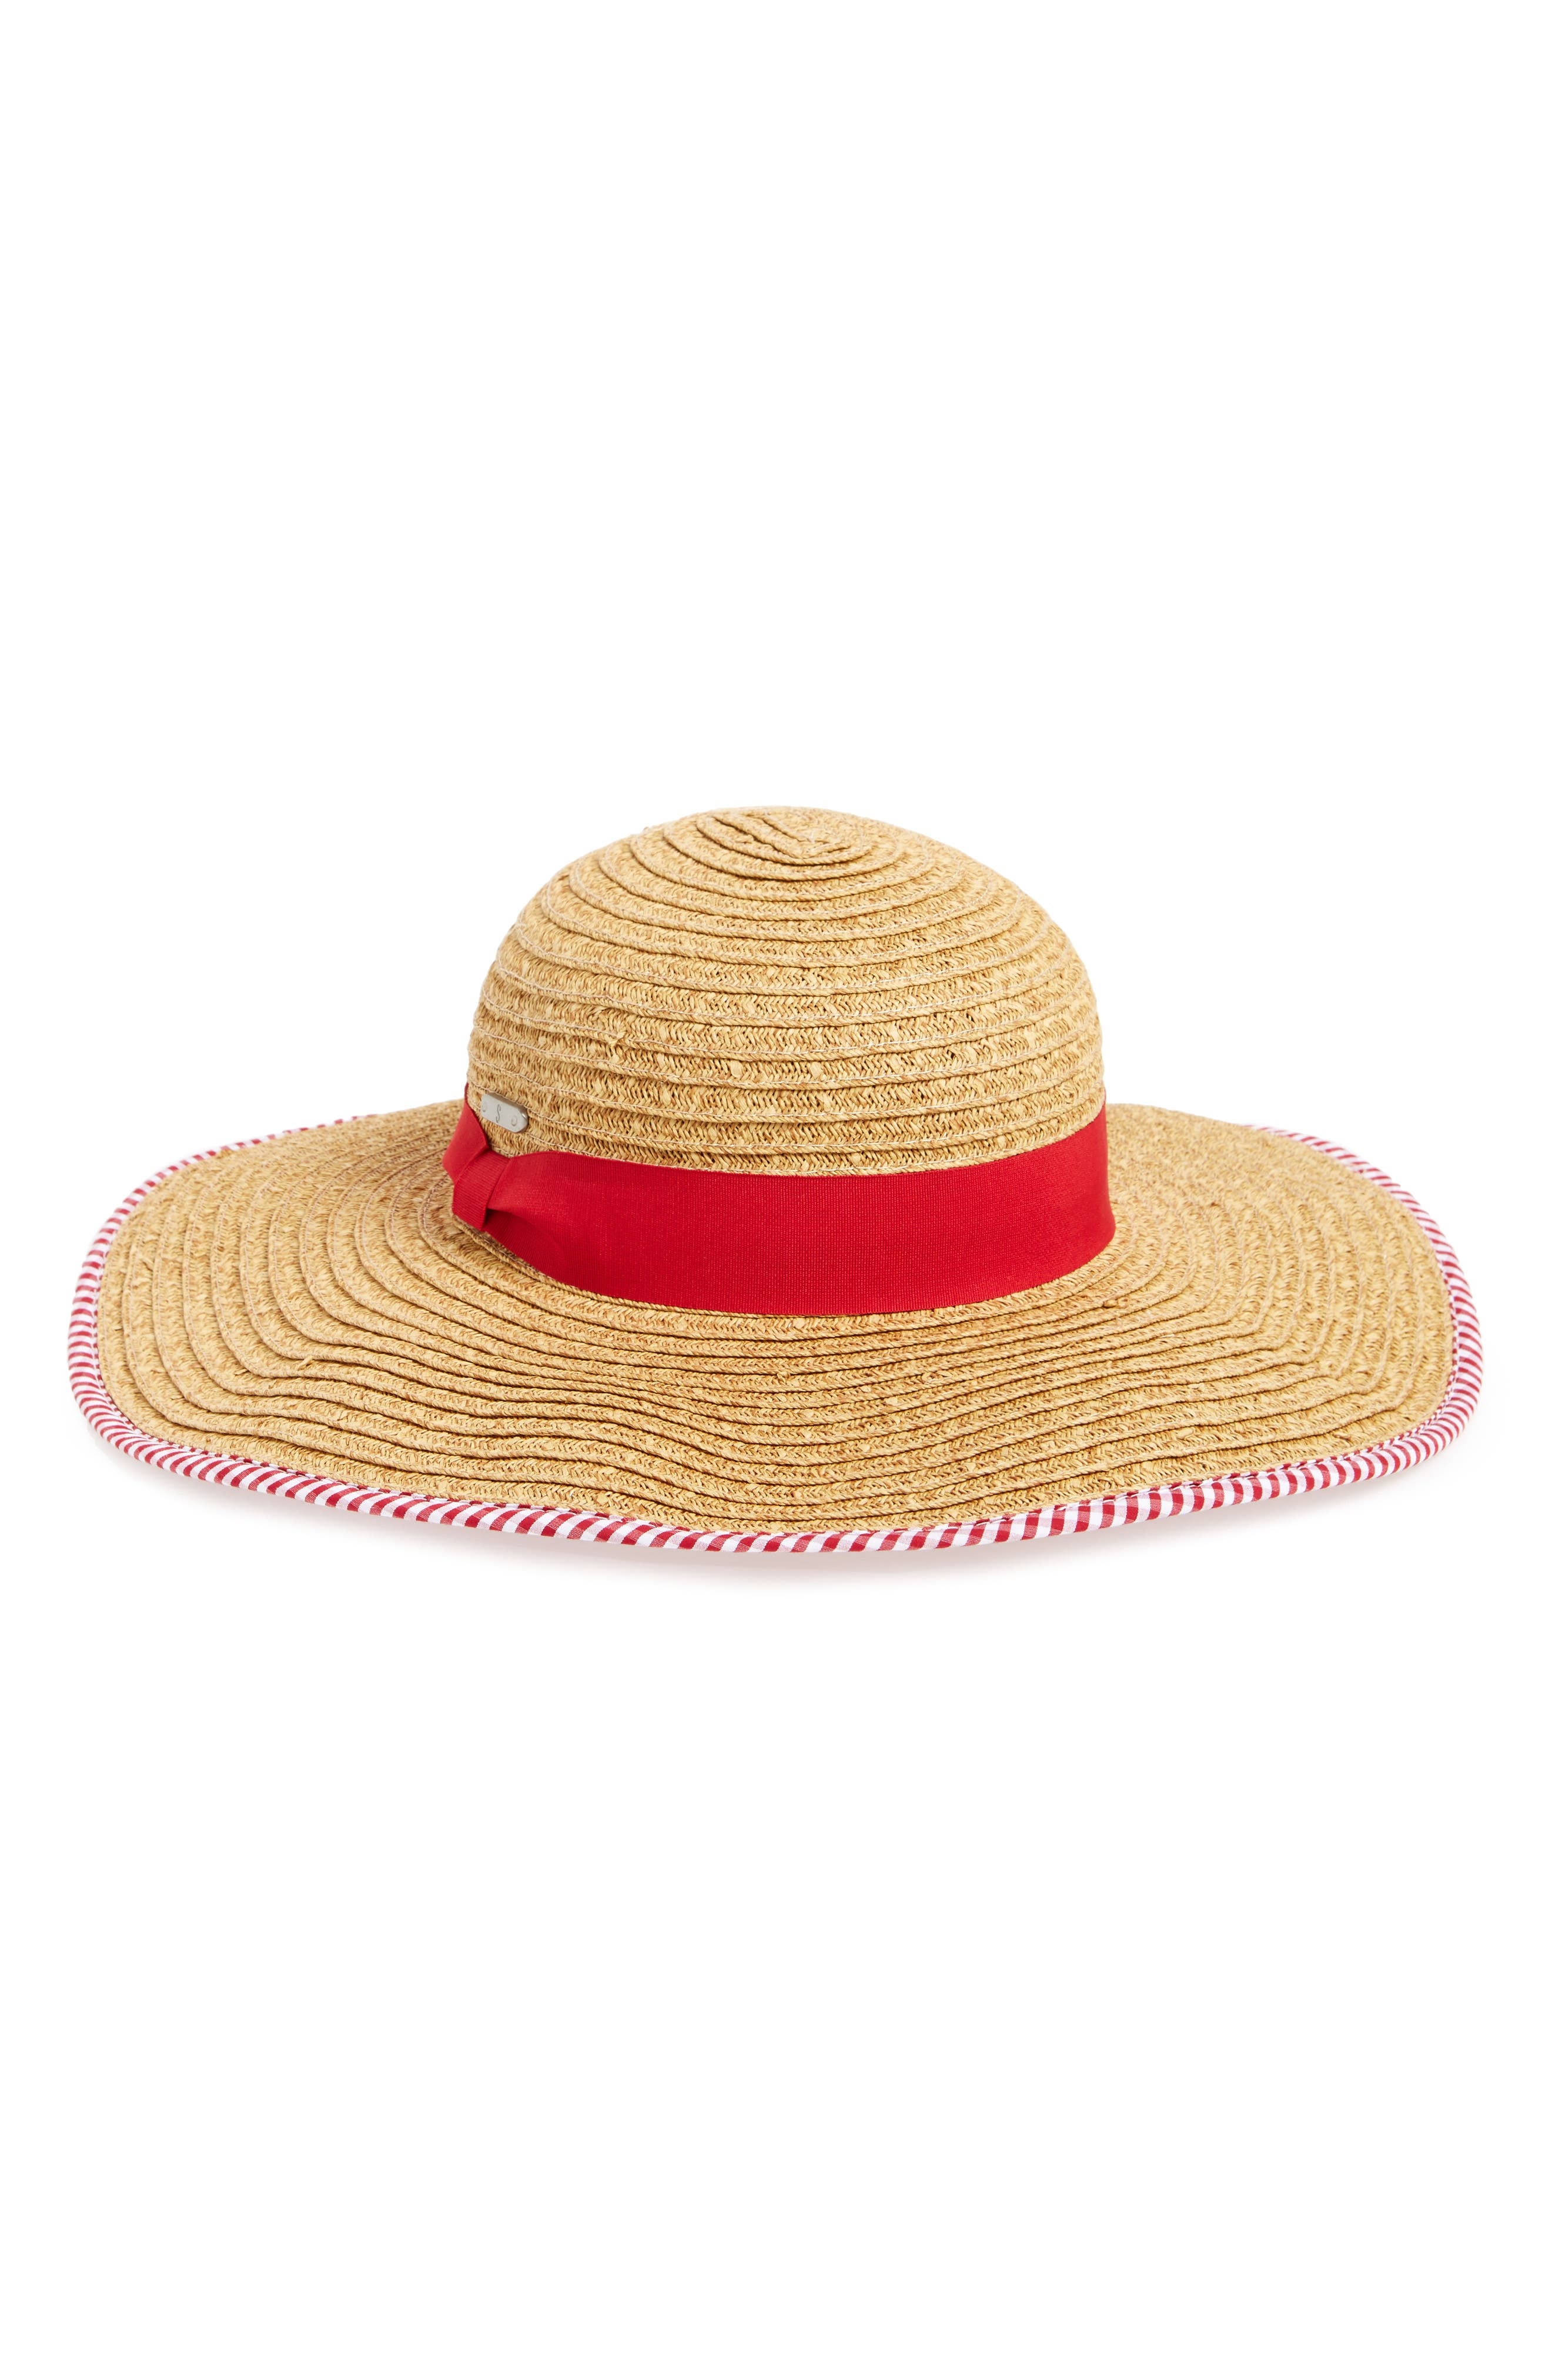 Floppy Straw Hat,                         Main,                         color, Red